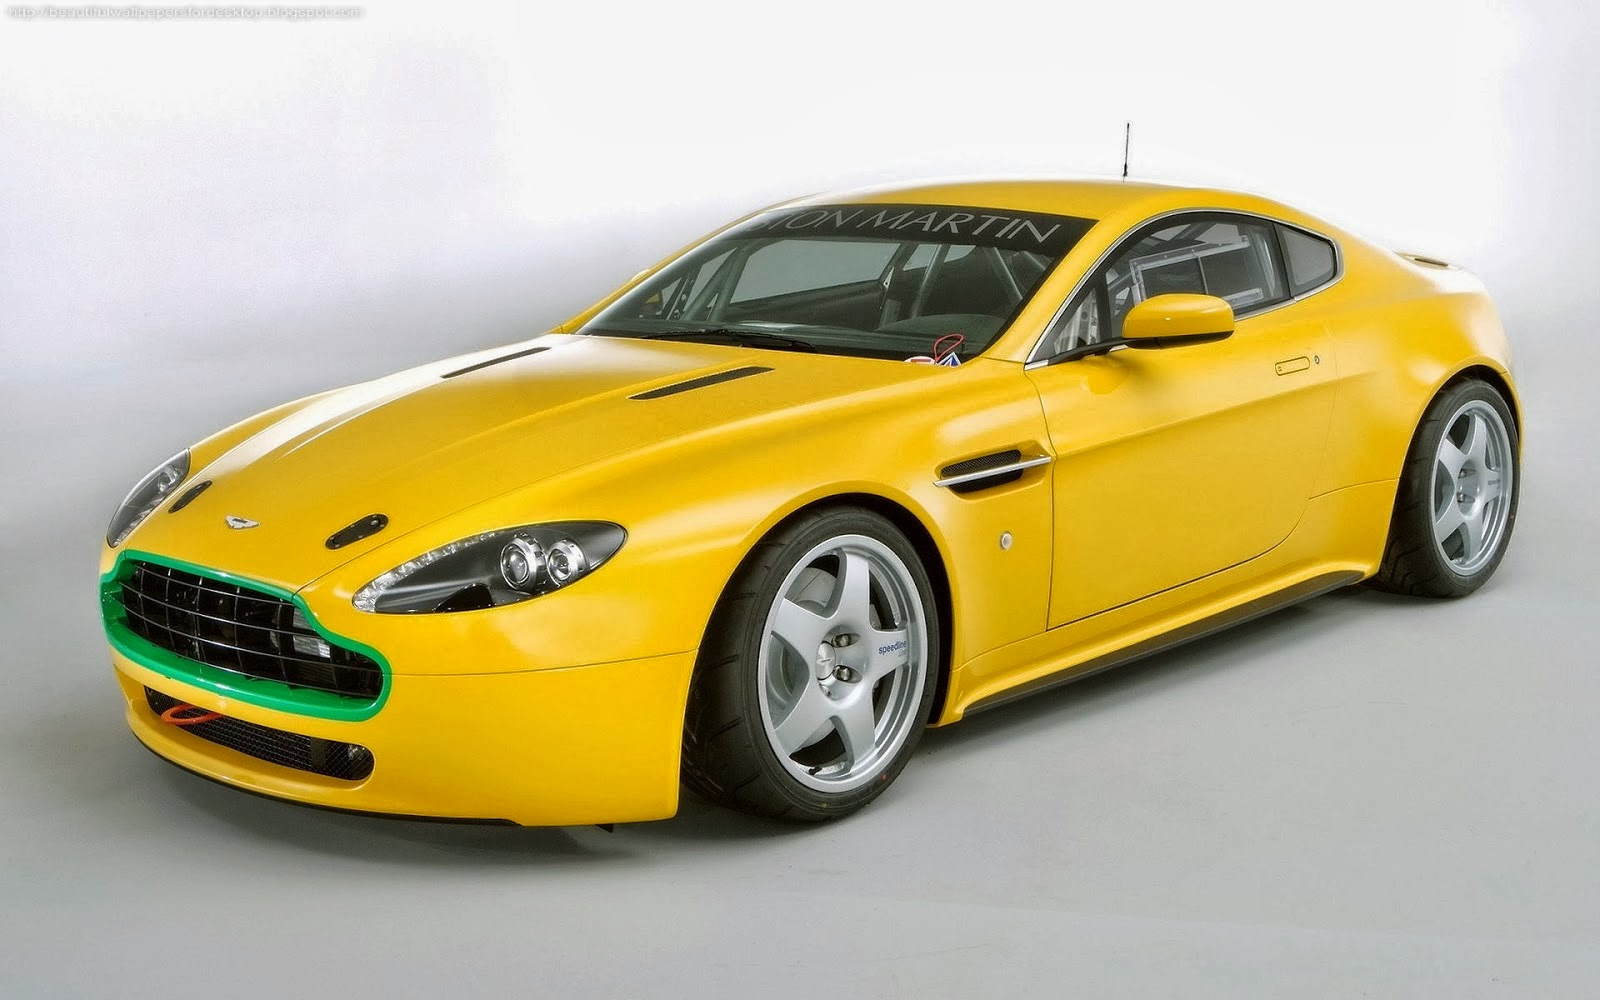 Beautiful Wallpapers: Beautiful Yellow Cars Wallpapers Desktop